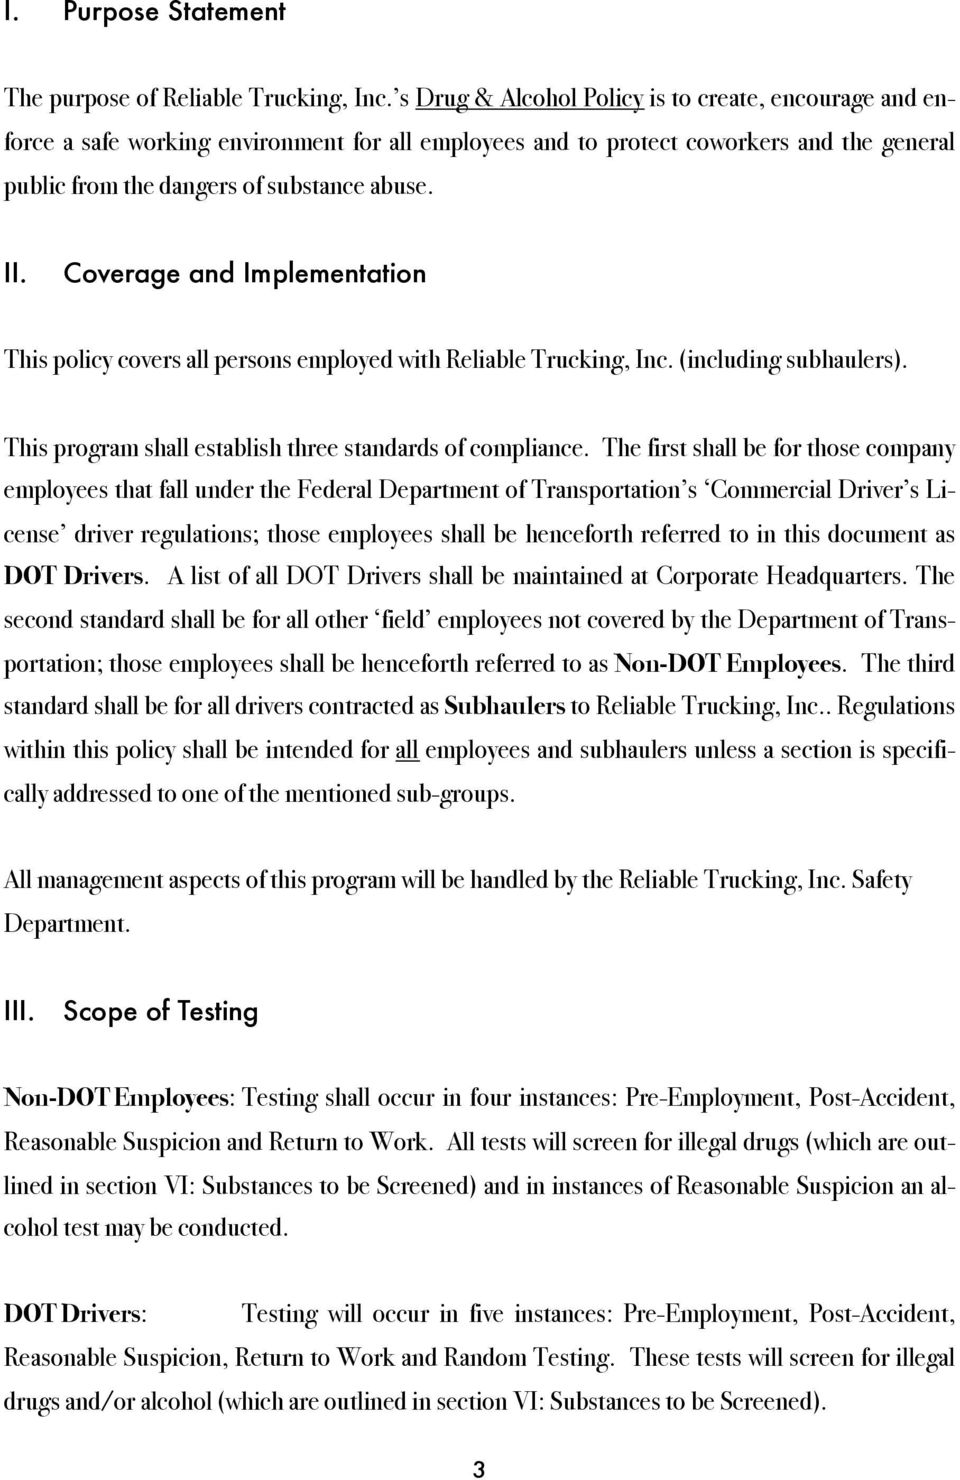 Coverage and Implementation This policy covers all persons employed with Reliable Trucking, Inc. (including subhaulers). This program shall establish three standards of compliance.